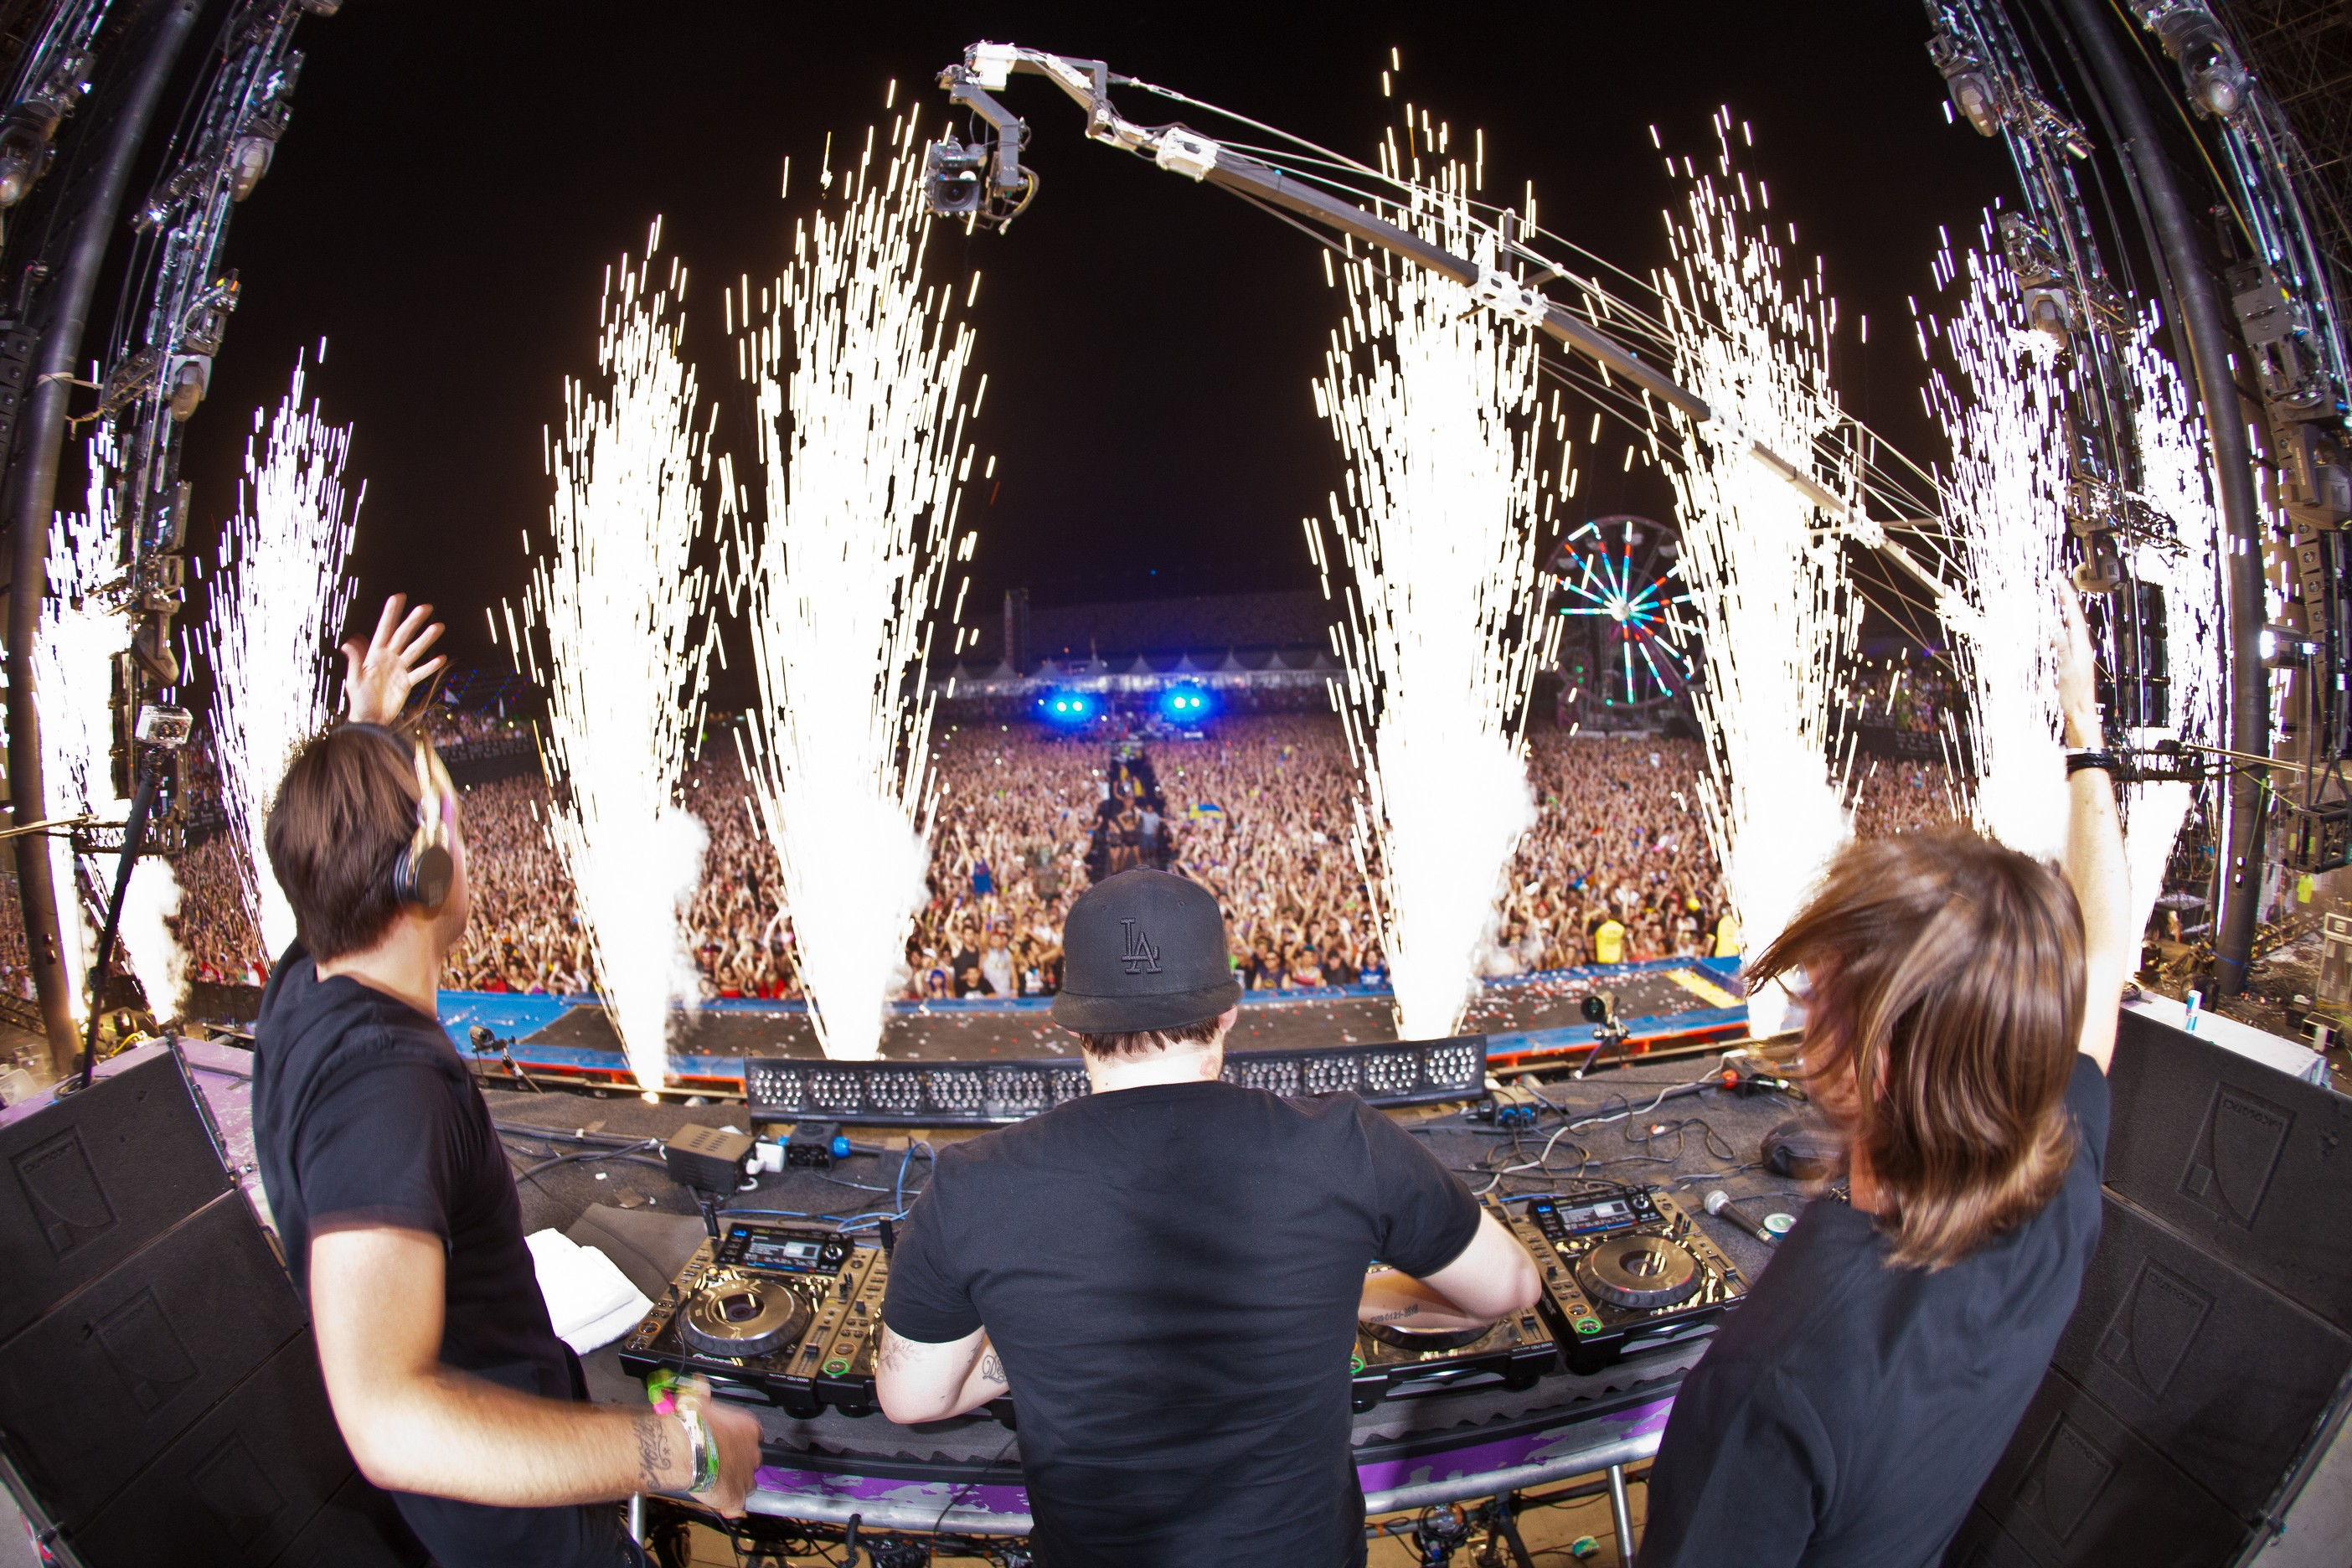 Swedish House Mafia at Electric Daisy Carnival&#39;s main stage in June 2011.